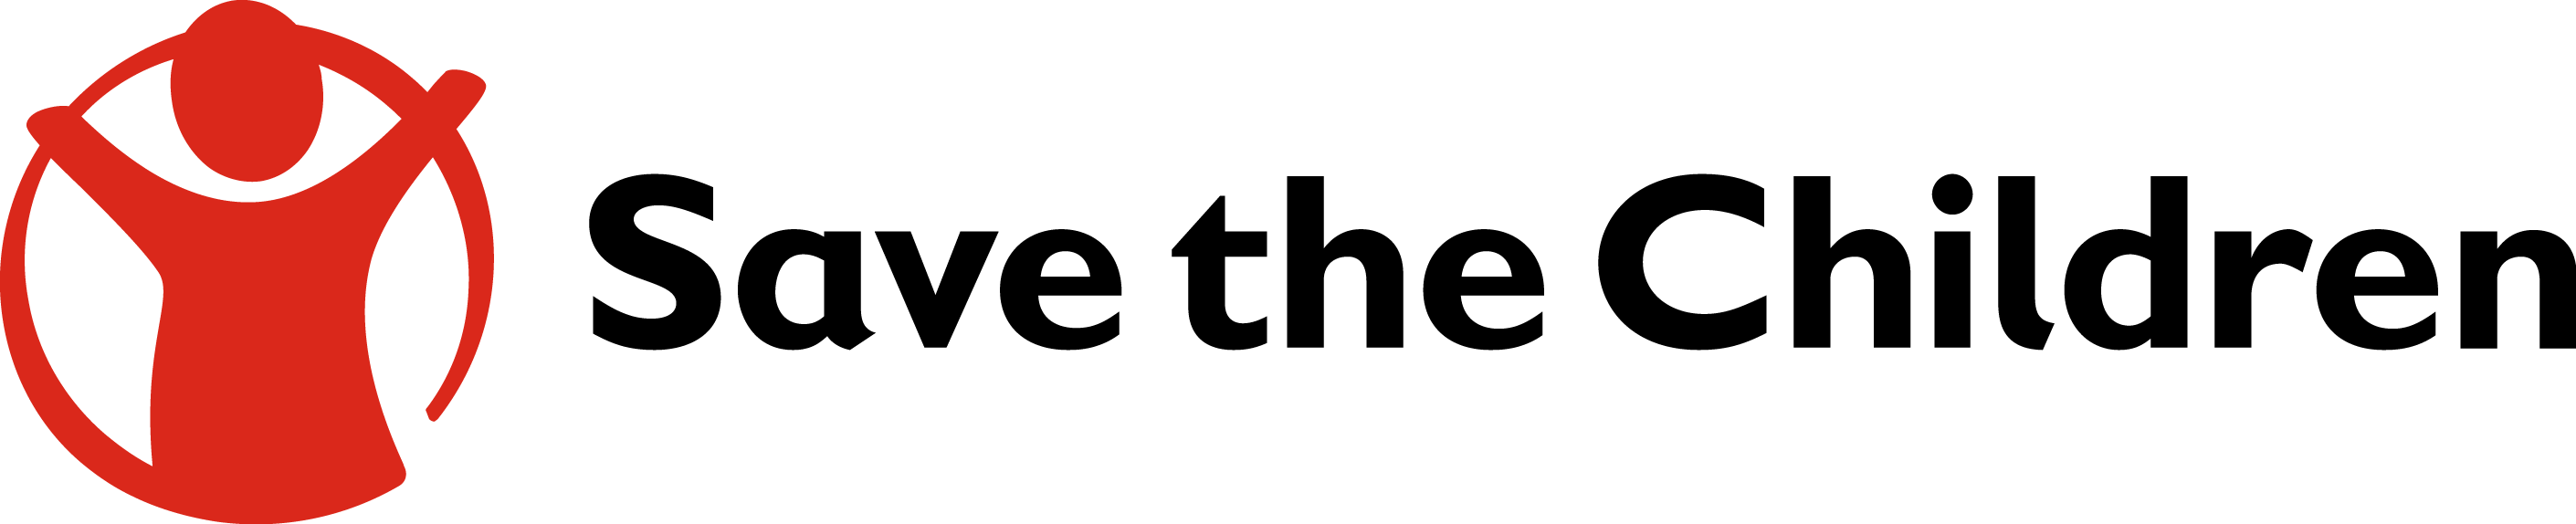 Image save the children logo